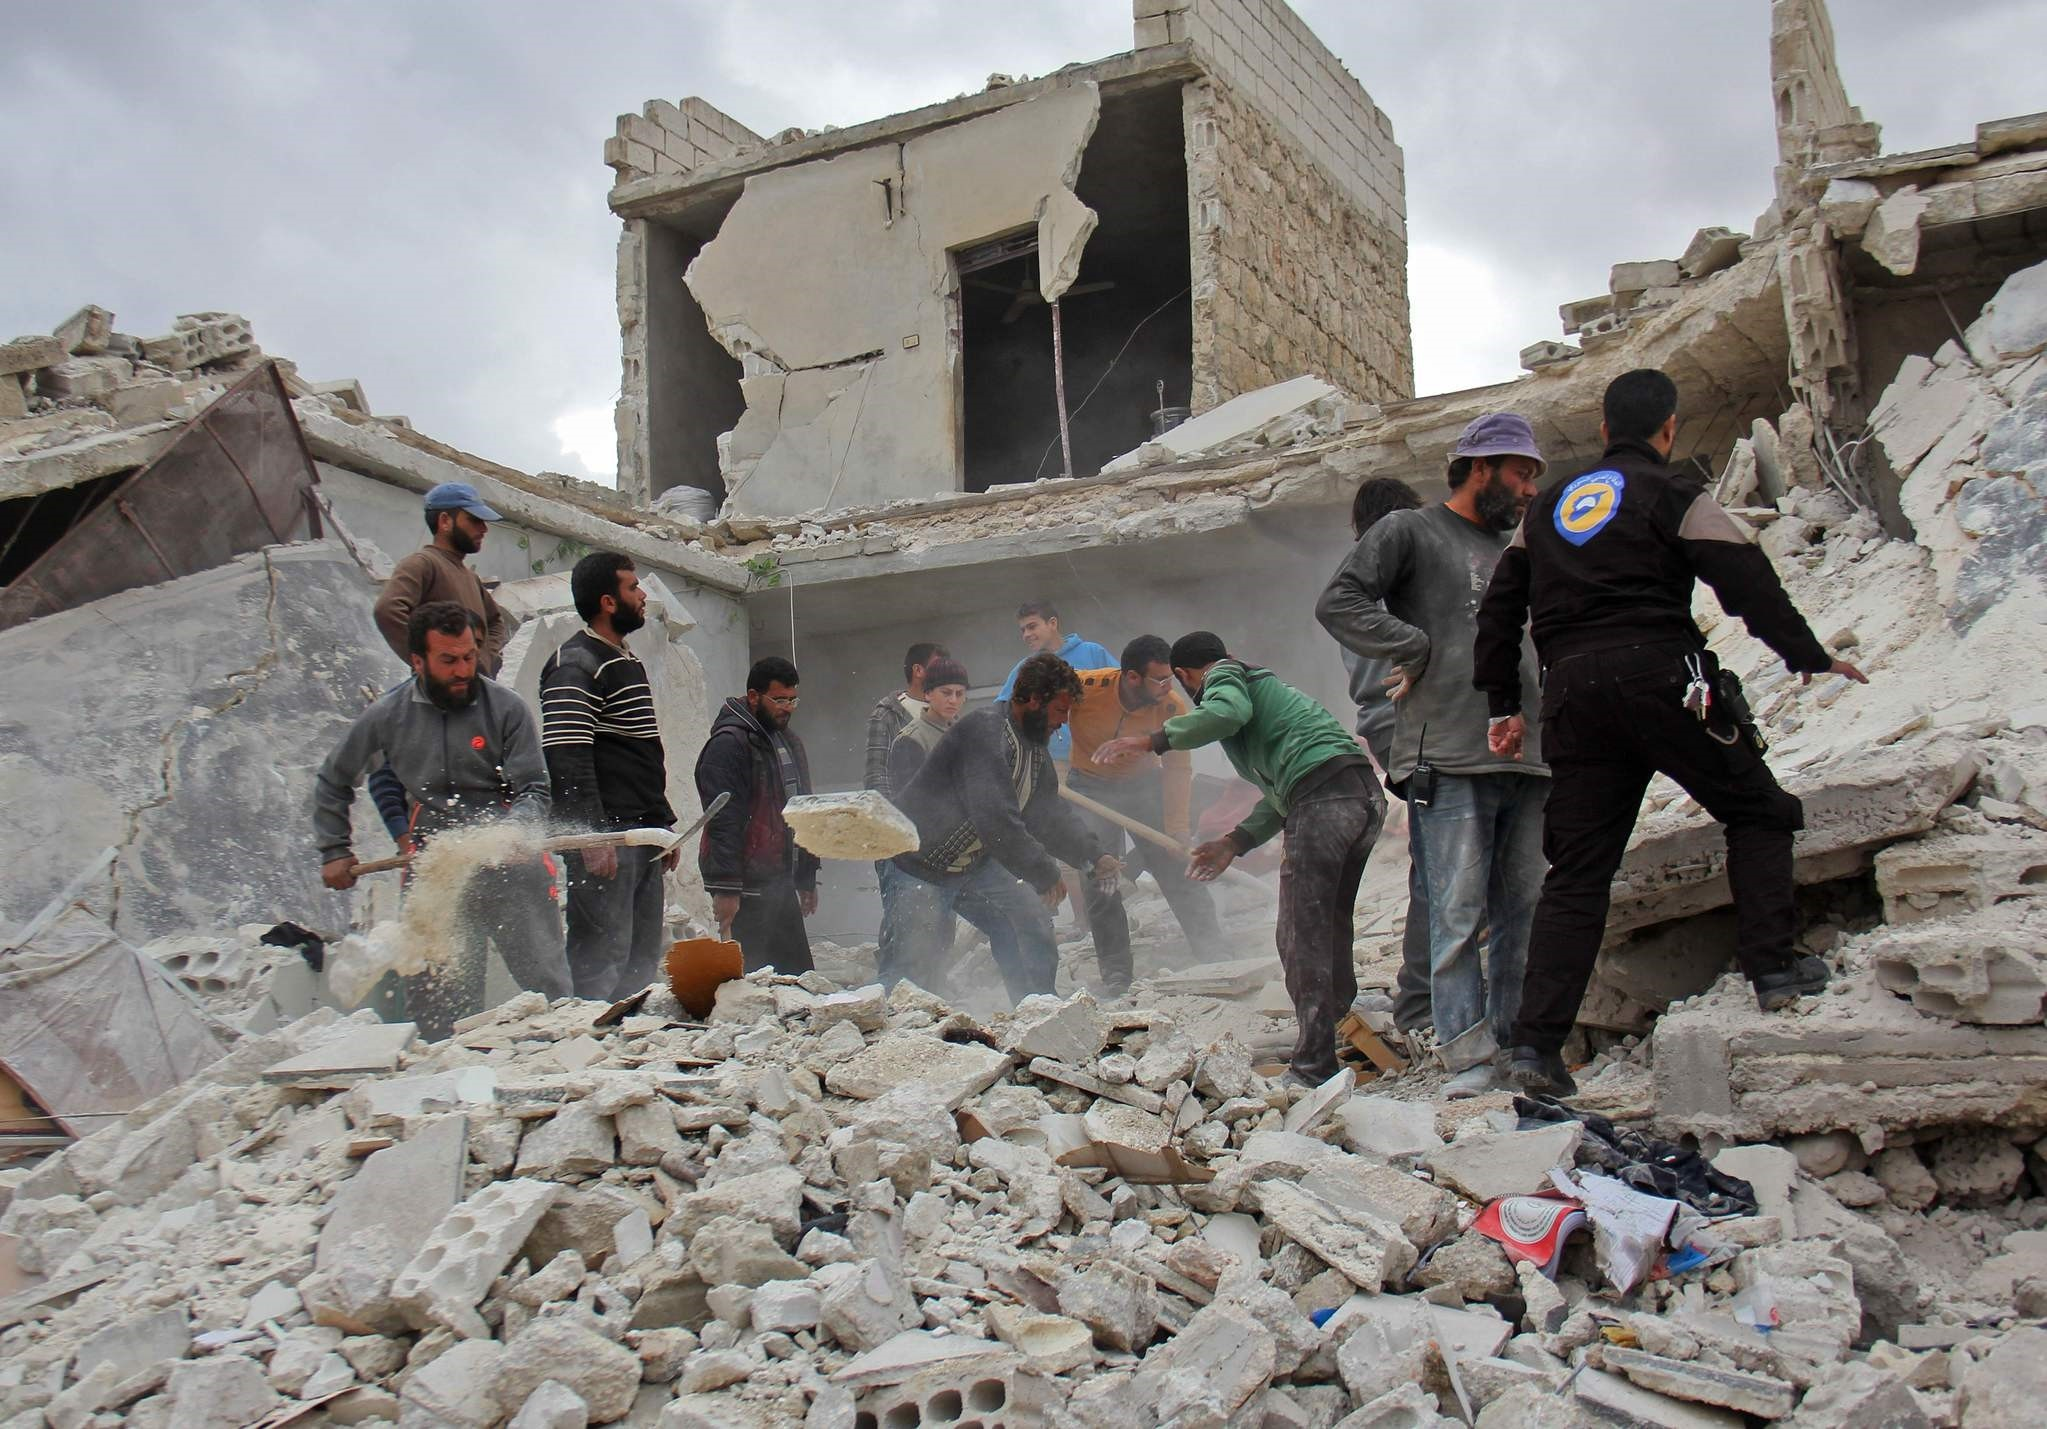 Rescuers and civilians inspect a destroyed building in the Syrian village following air strikes by Syrian and Russian warplanes on November 16, 2016. (AFP Photo)